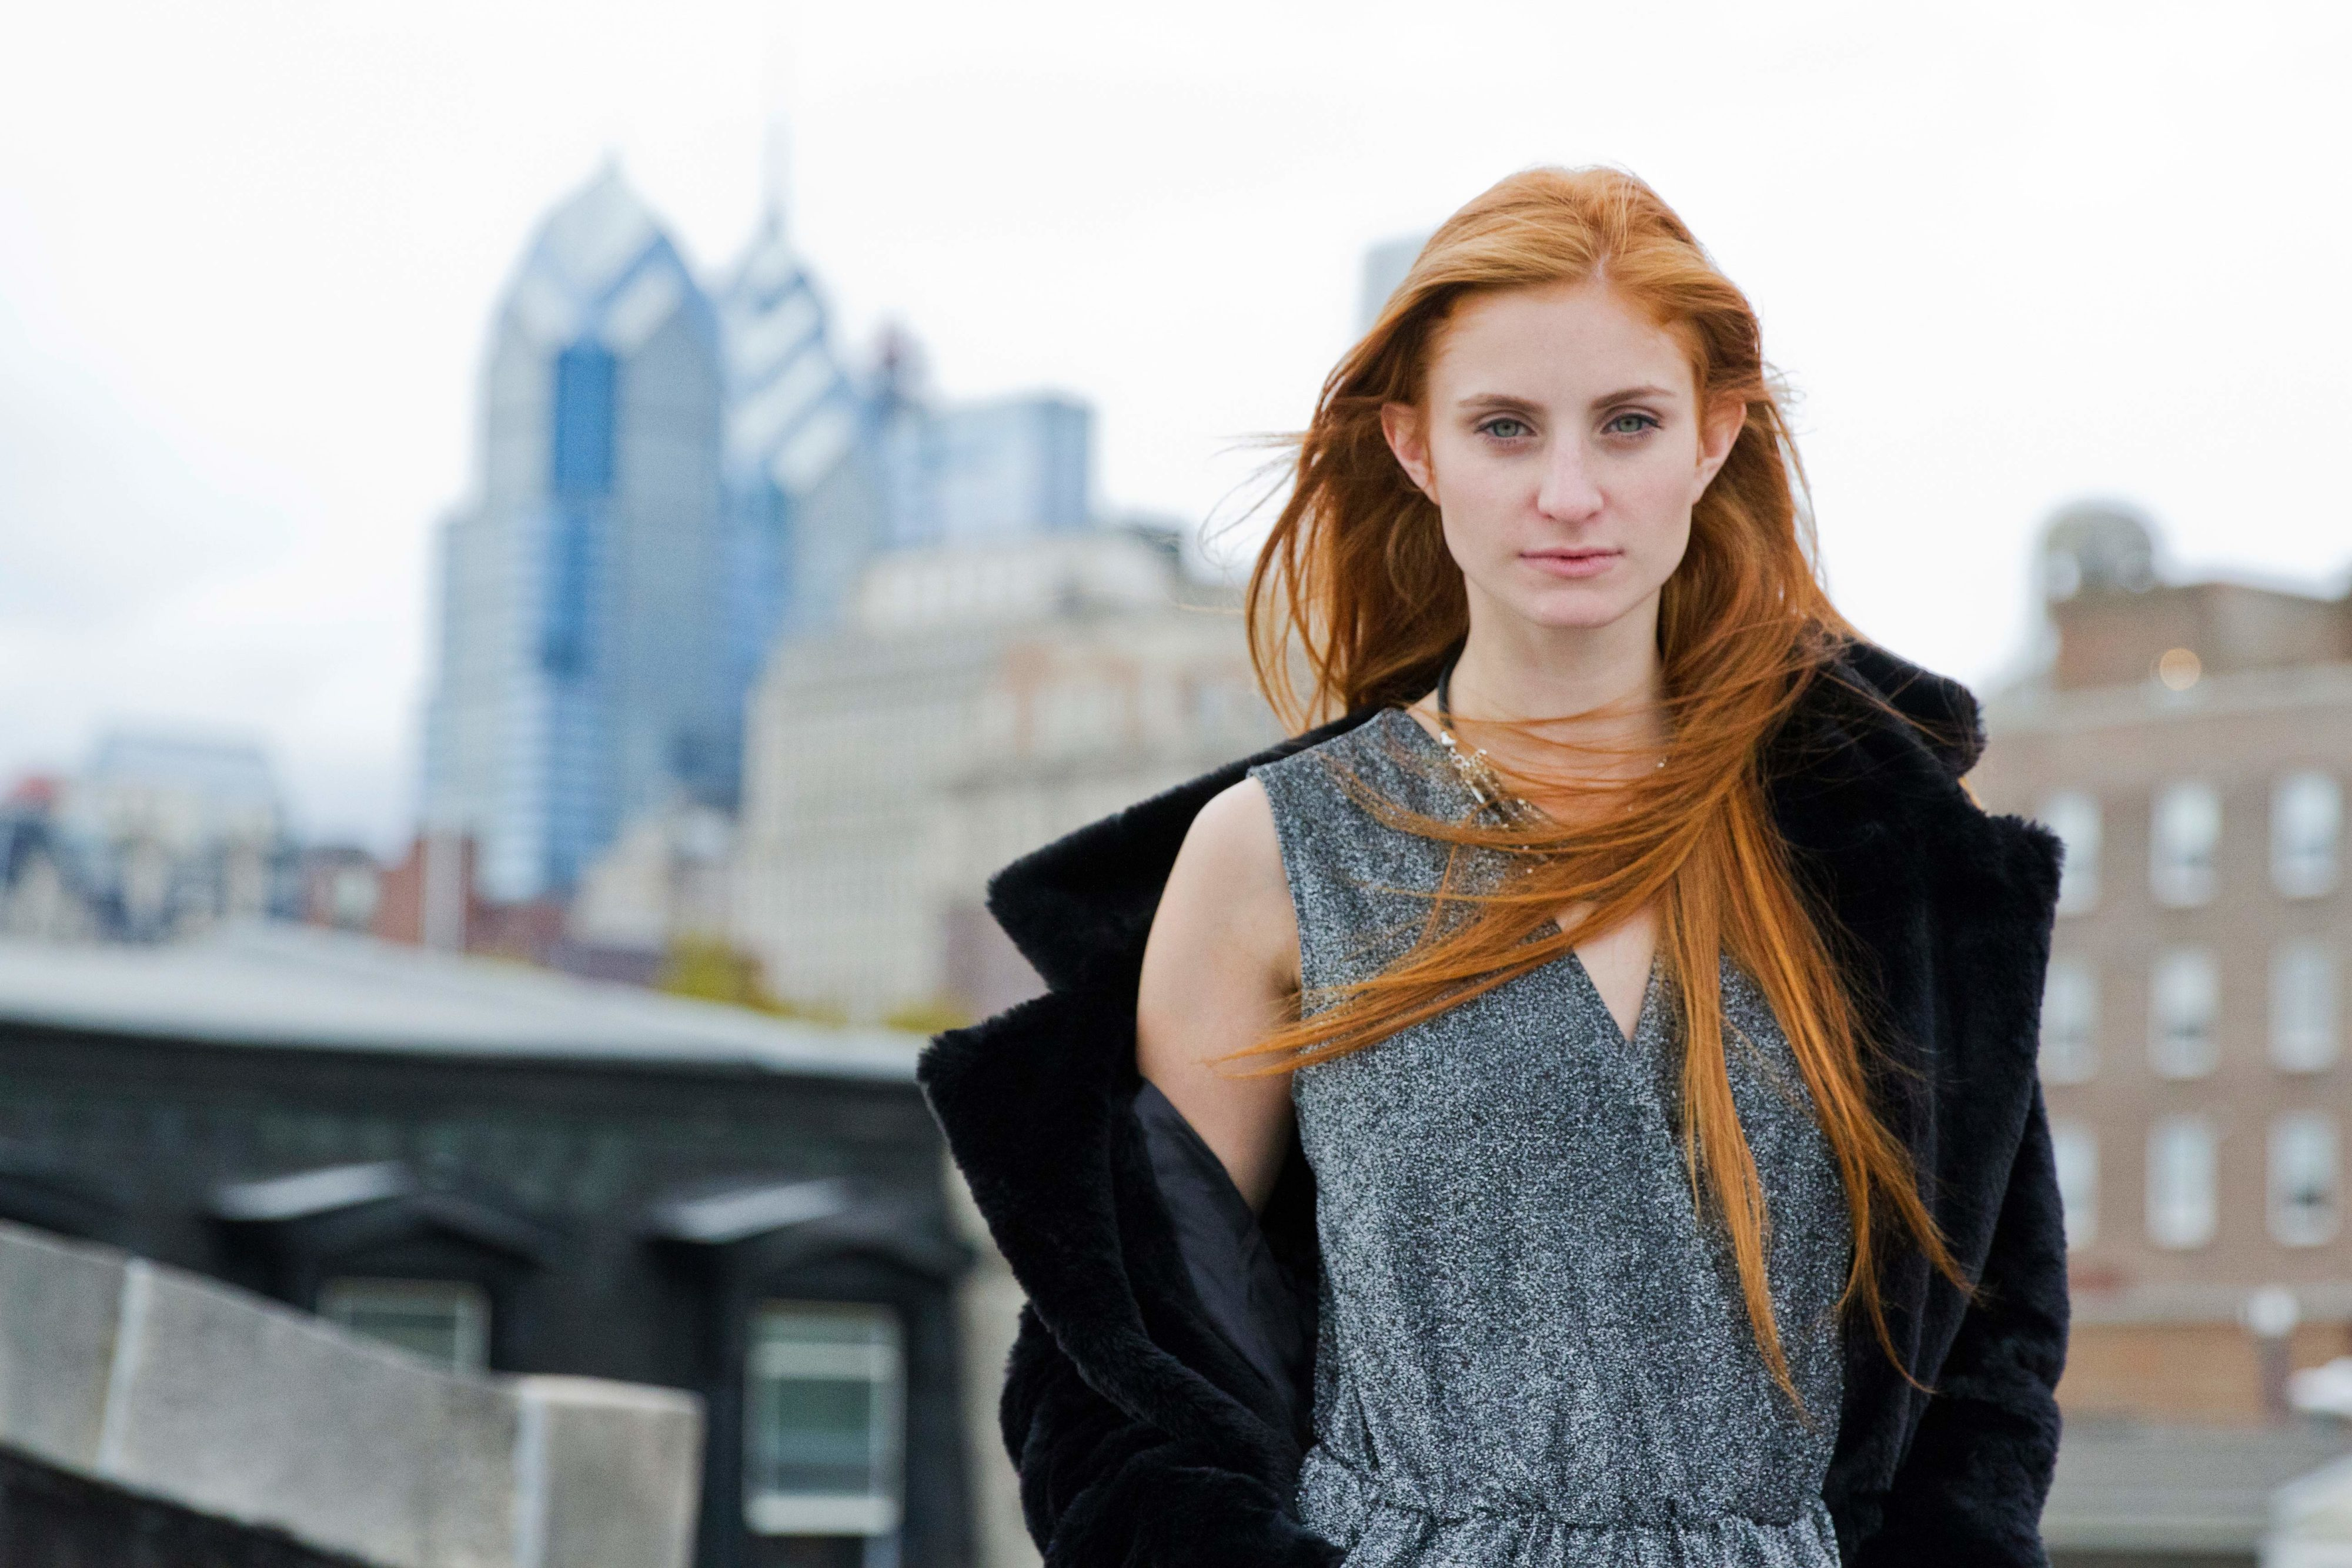 Redhead Girl in jacket on